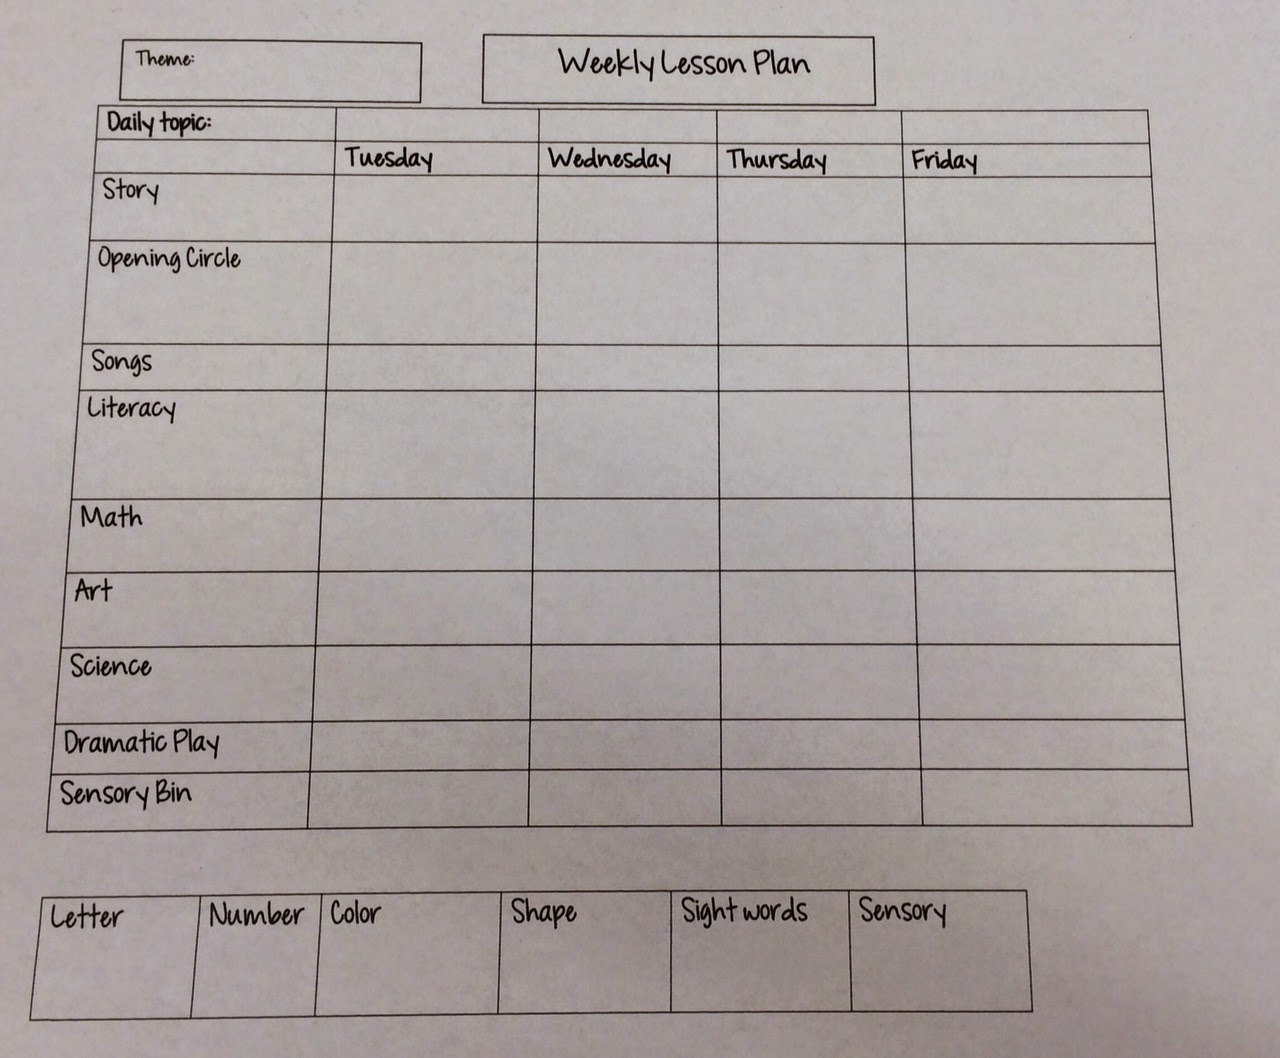 miss nicole u0026 39 s preschool  weekly lesson plan template